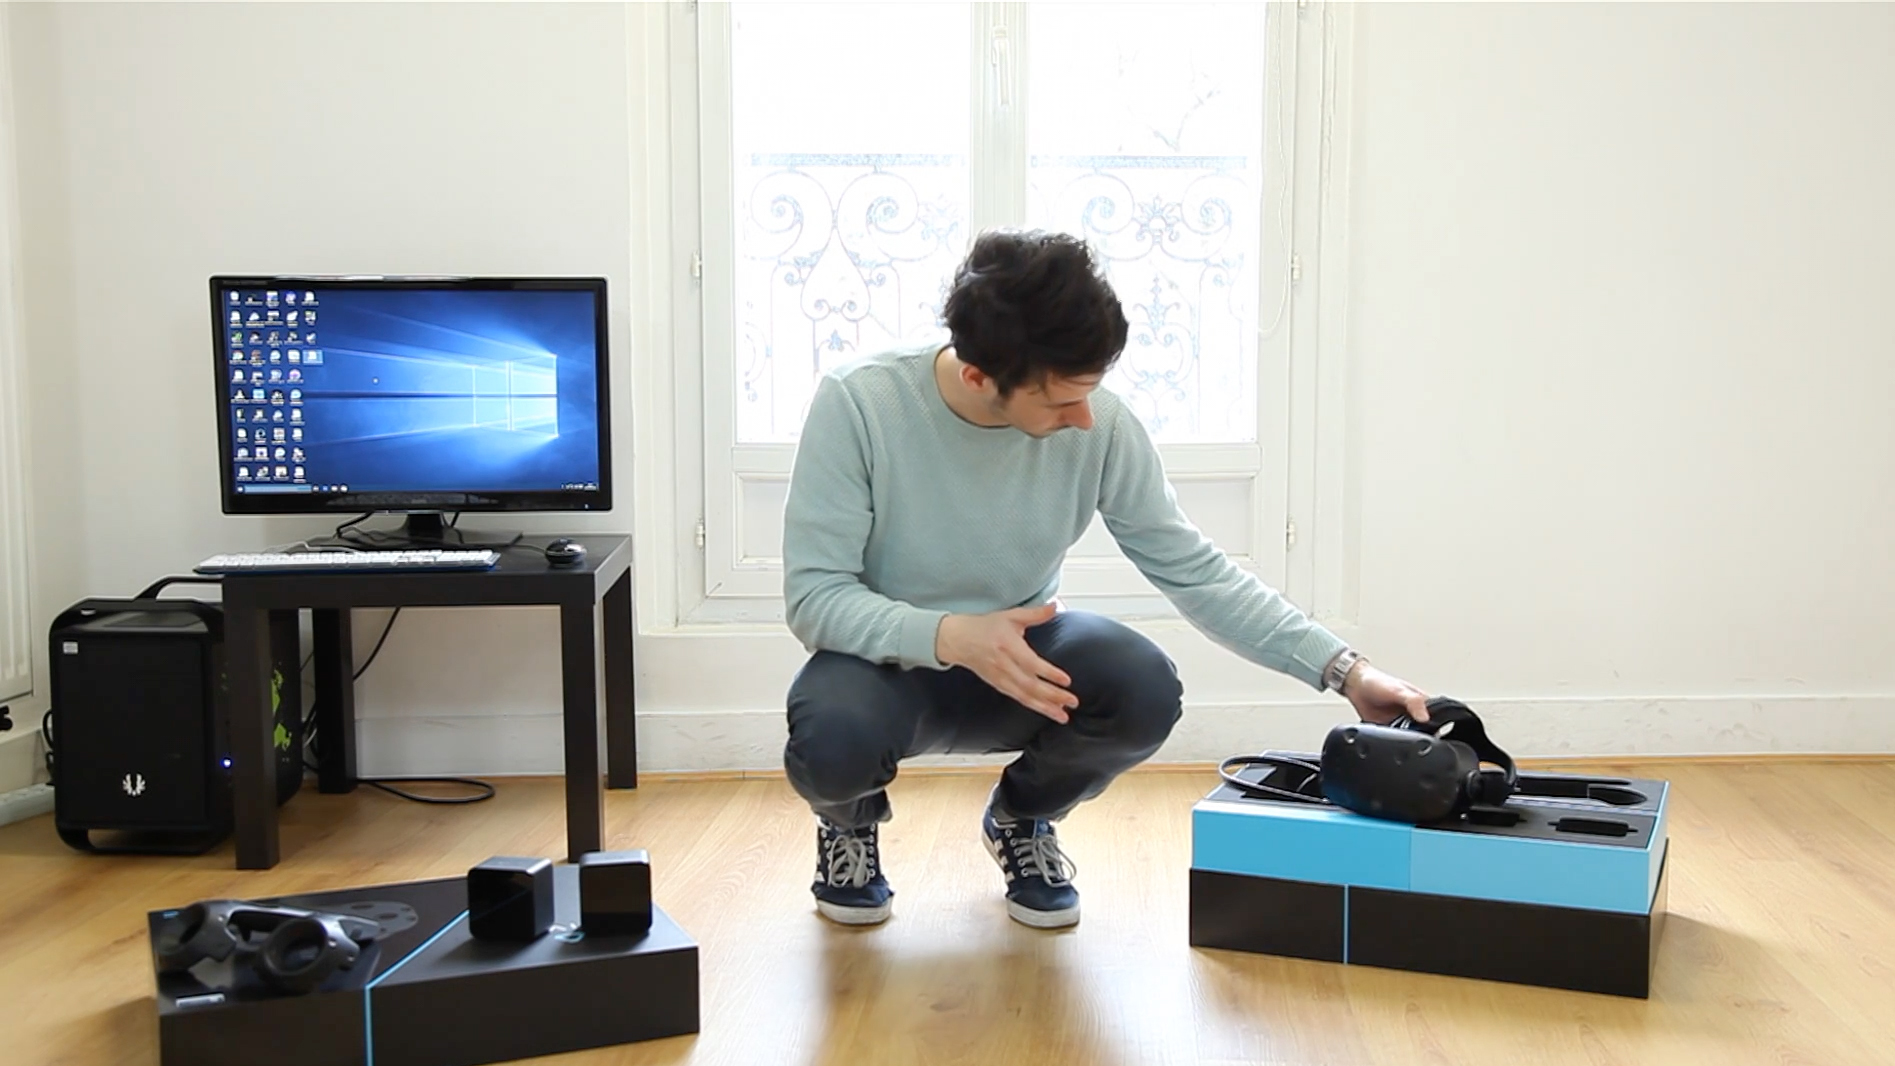 Htc vive le test vid o du casque de r alit virtuelle le for Vive le jardin 06